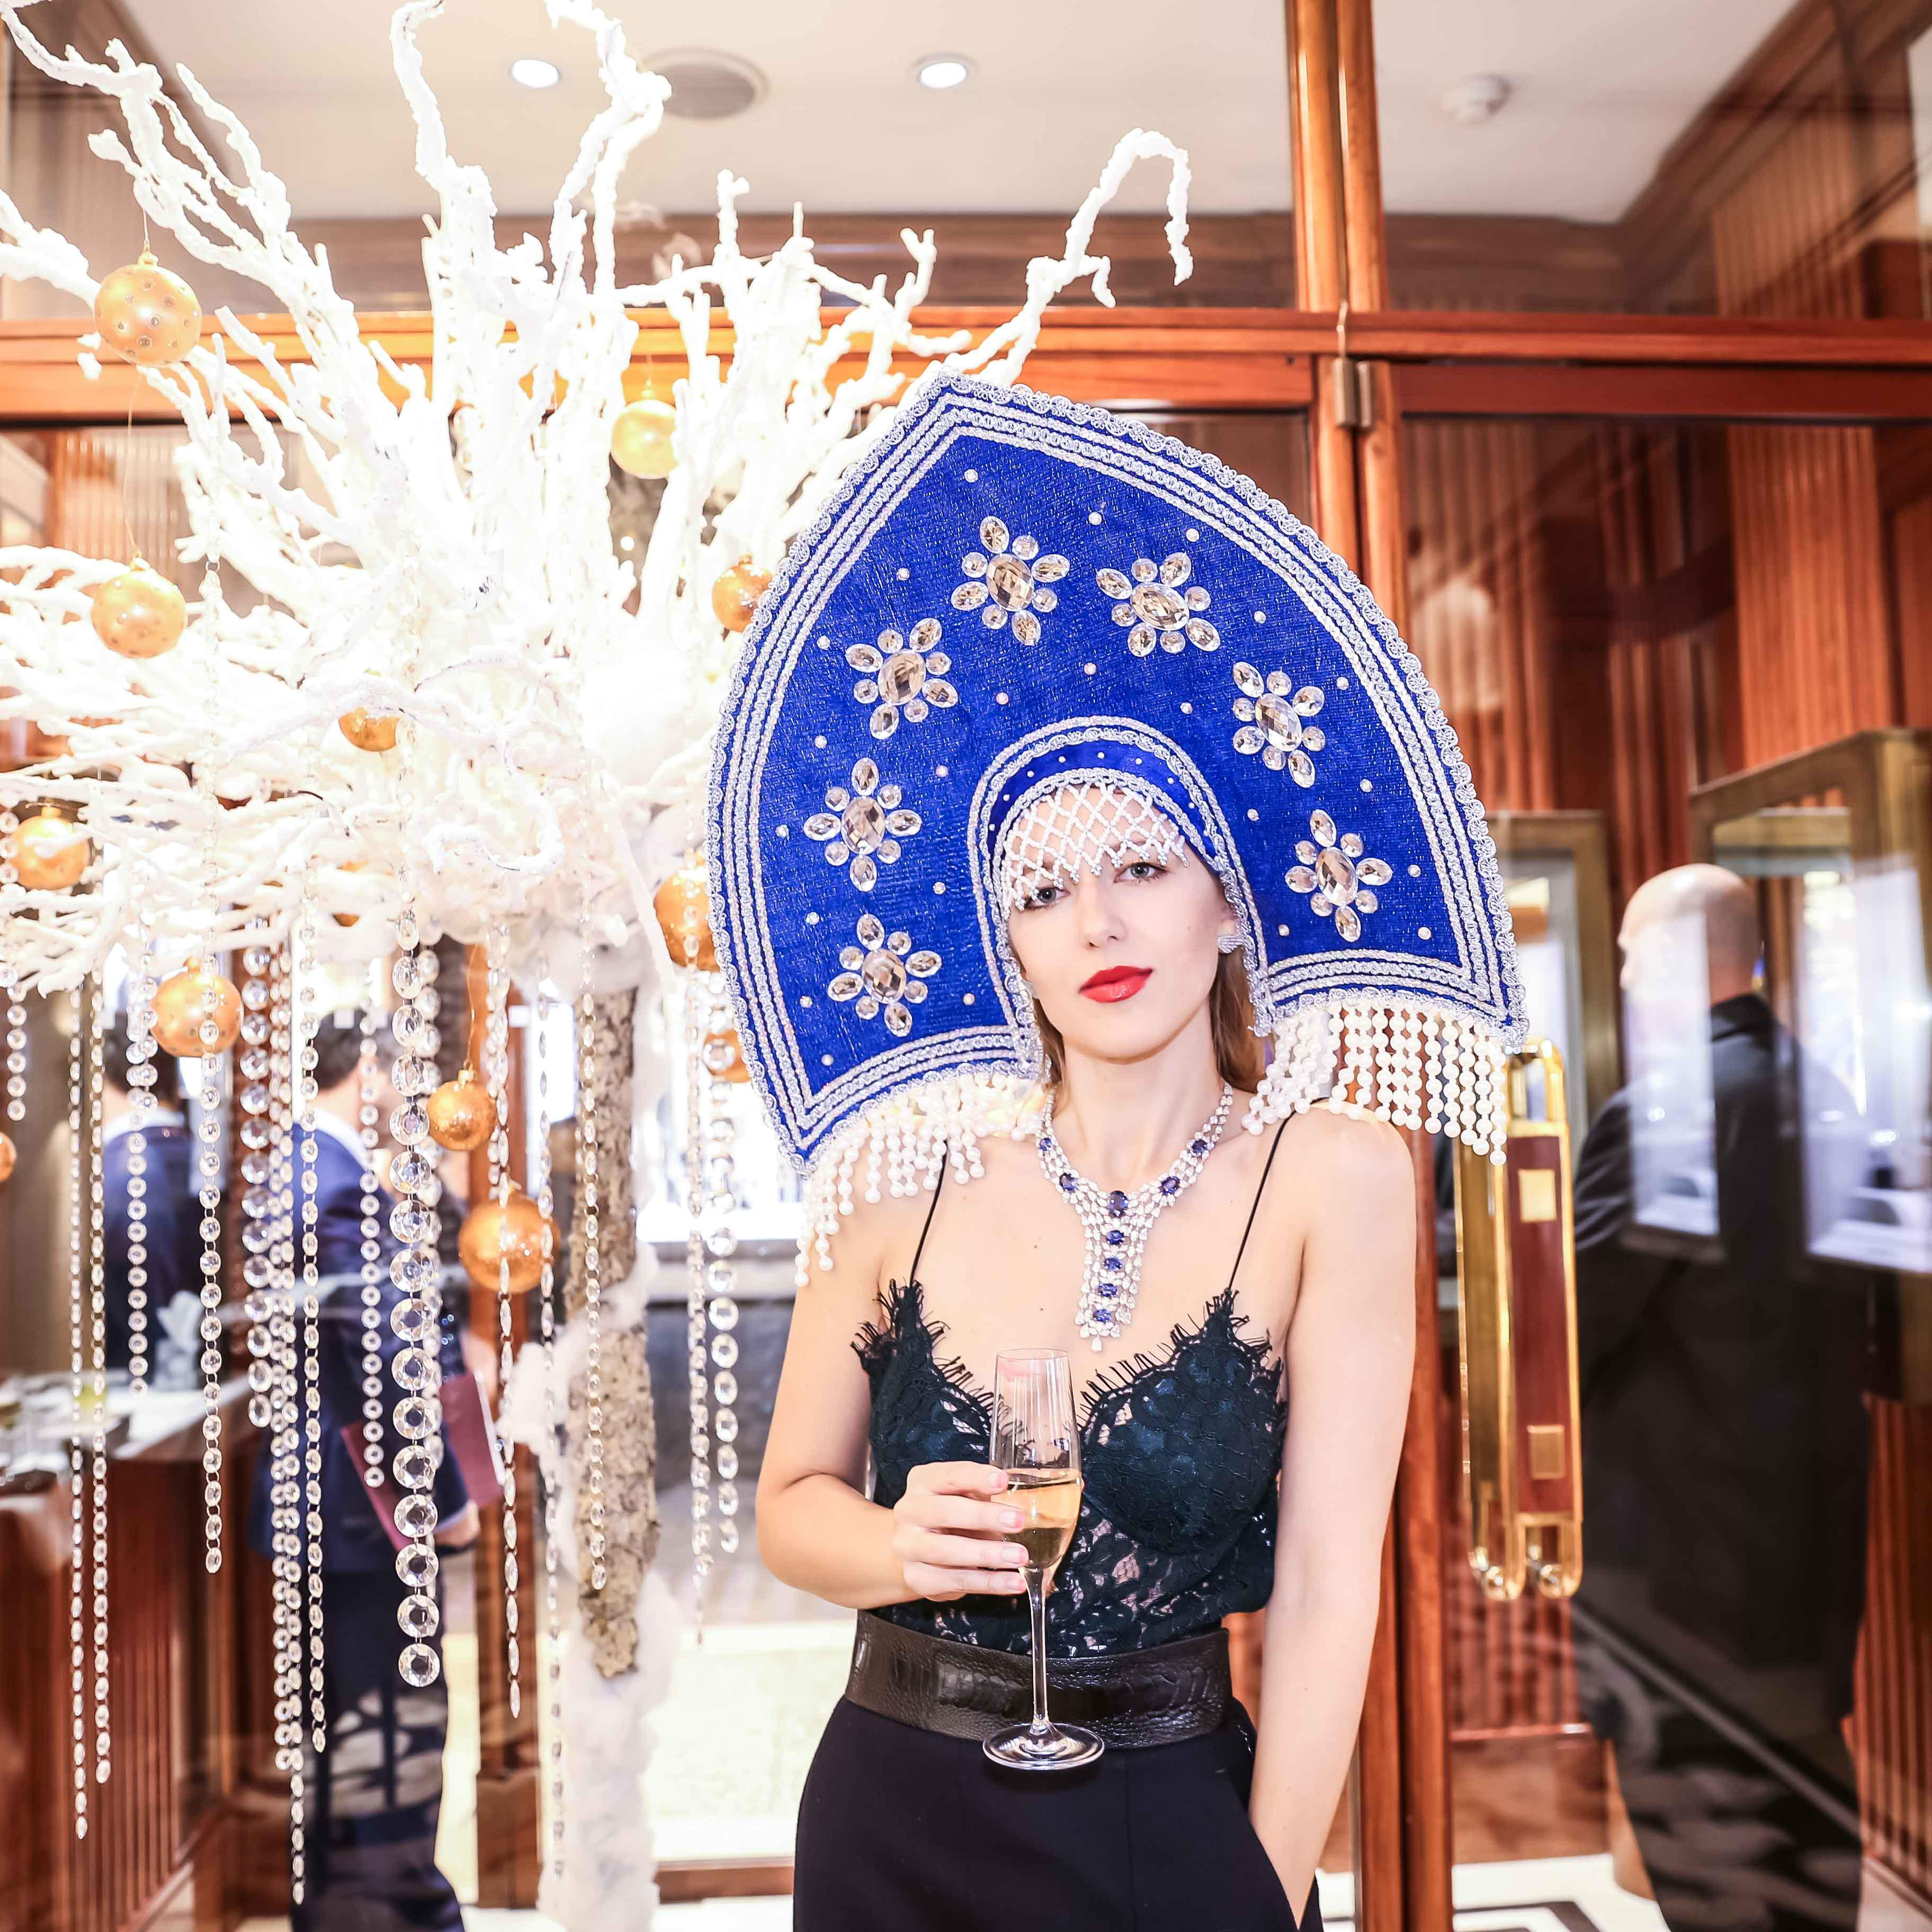 CHATILA CAVIAR AND CHAMPAGNE CHRISTMAS PARTY, OLD BOND STREET LONDON